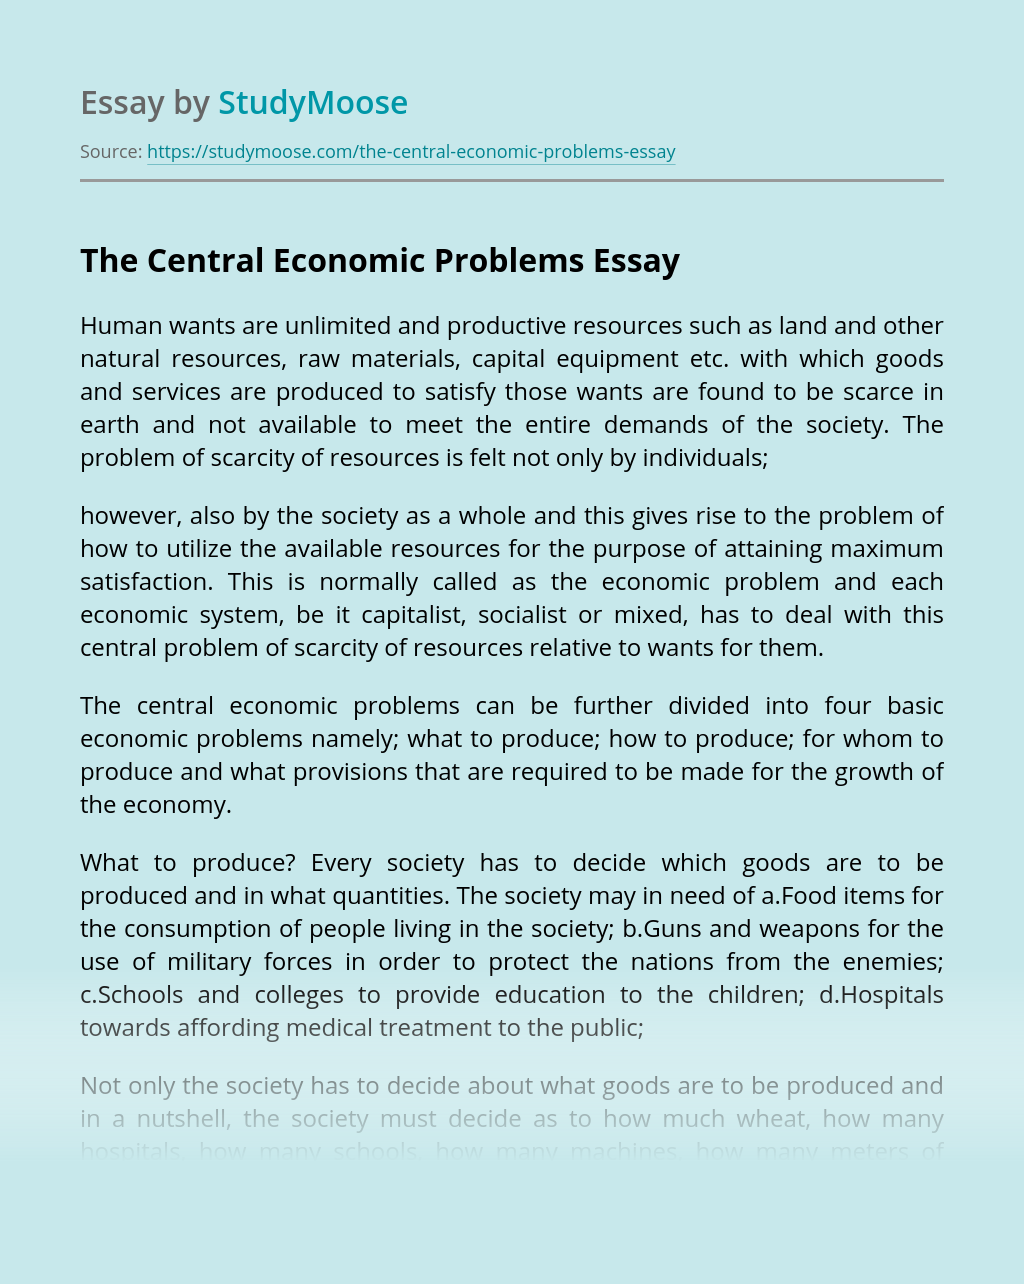 The Central Economic Problems